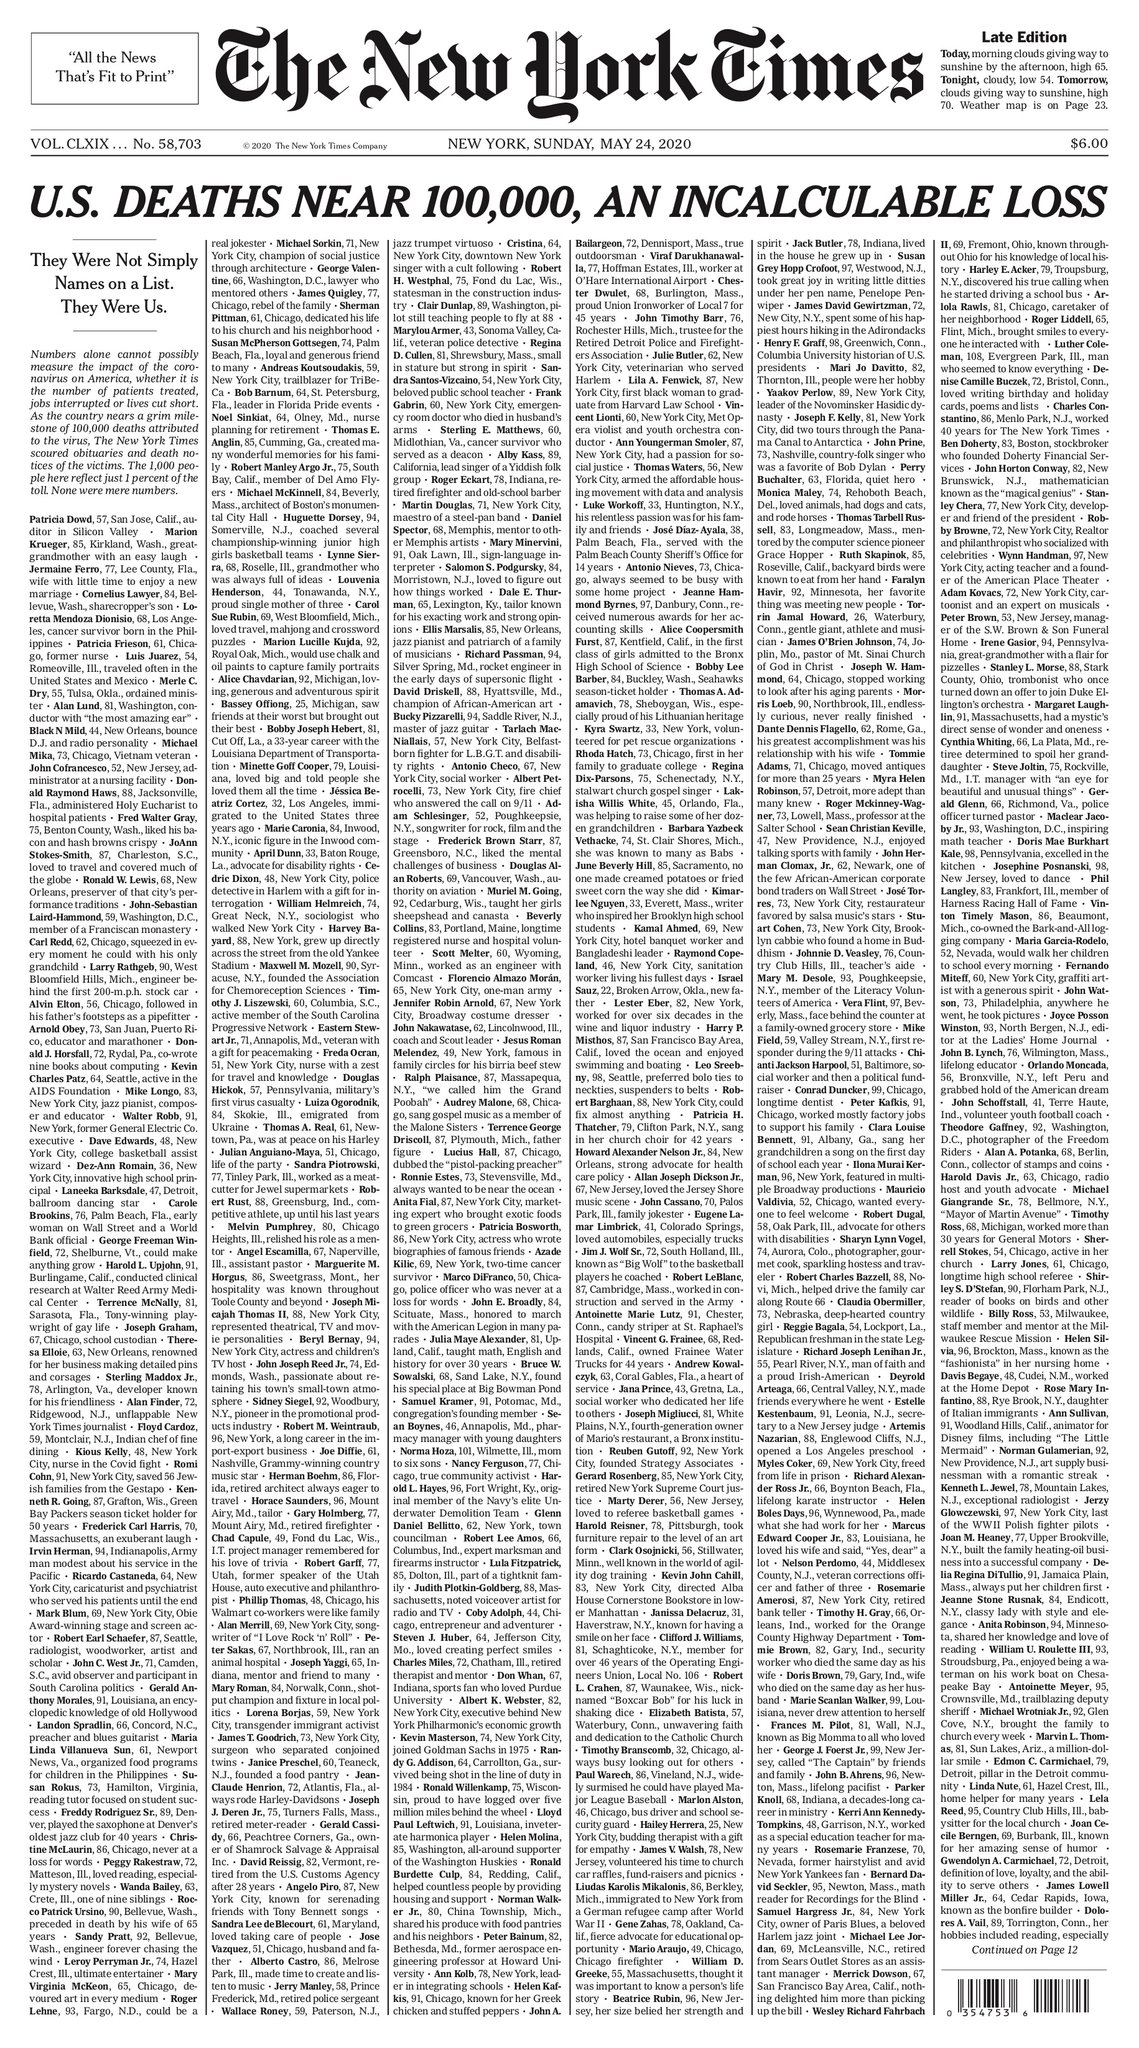 The New York Times provides insights behind their project to bring a front page full of names